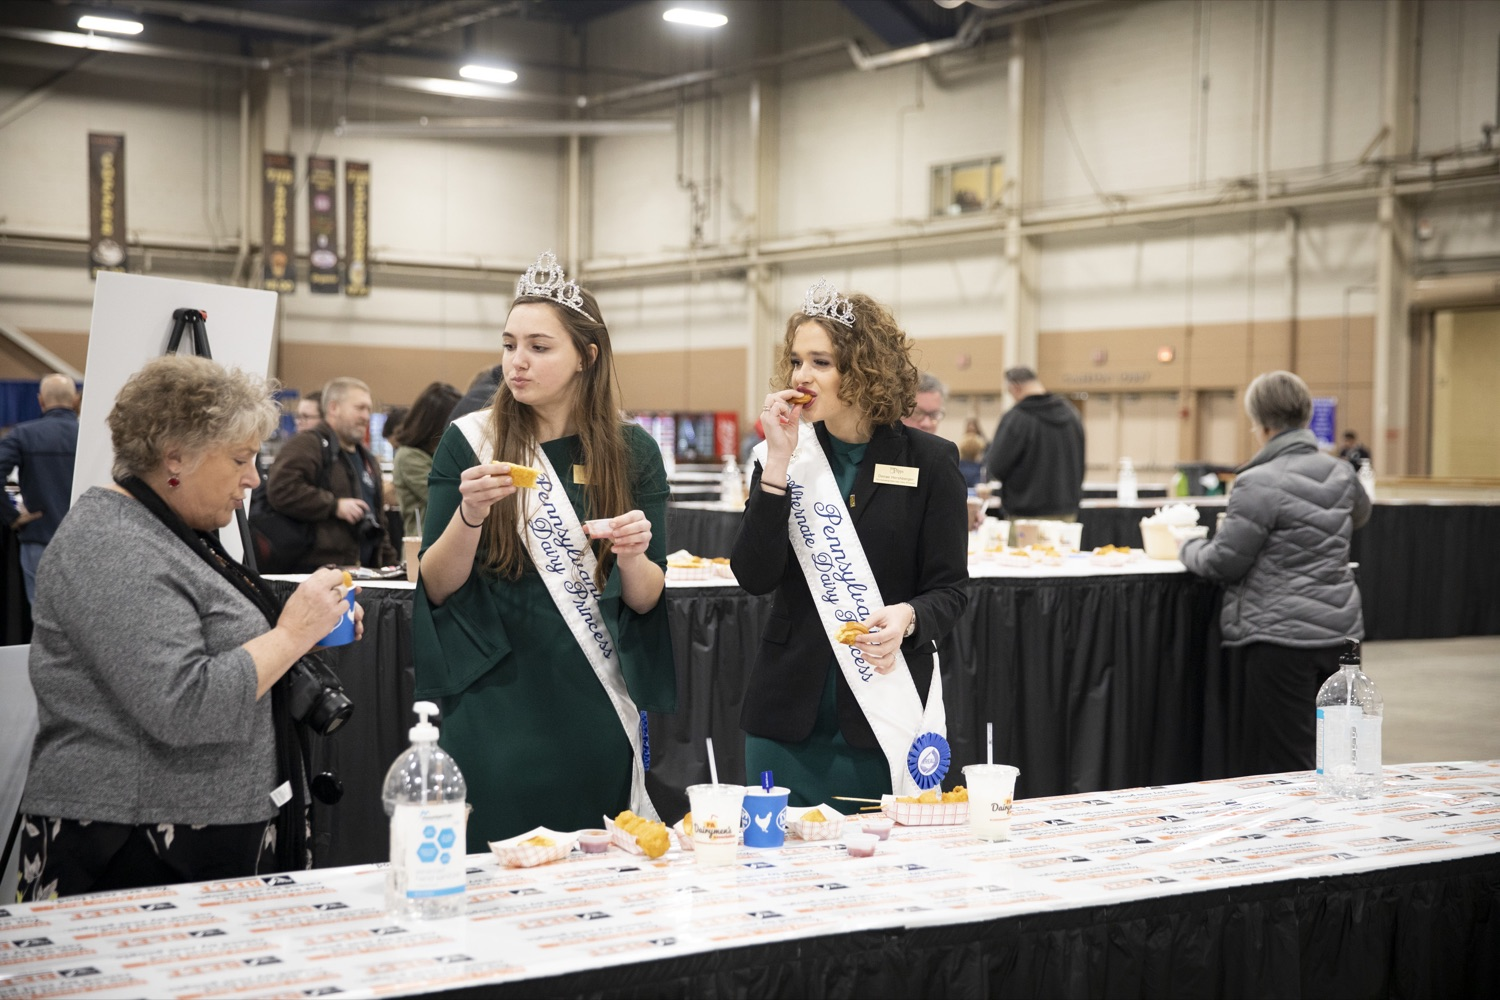 "<a href=""https://filesource.wostreaming.net/commonwealthofpa/photo/17658_FARM_SHOW_FIRST_TASTE_CZ_08.JPG"" target=""_blank"">⇣ Download Photo<br></a>Paige Peiffer and Denae Hershberger of Pennsylvania Dairy Princess & Promotion Services, sample milkshakes and treats from the PA Dairymens Association at the Pennsylvania Farm Show Food Court in Harrisburg on January 2, 2020."